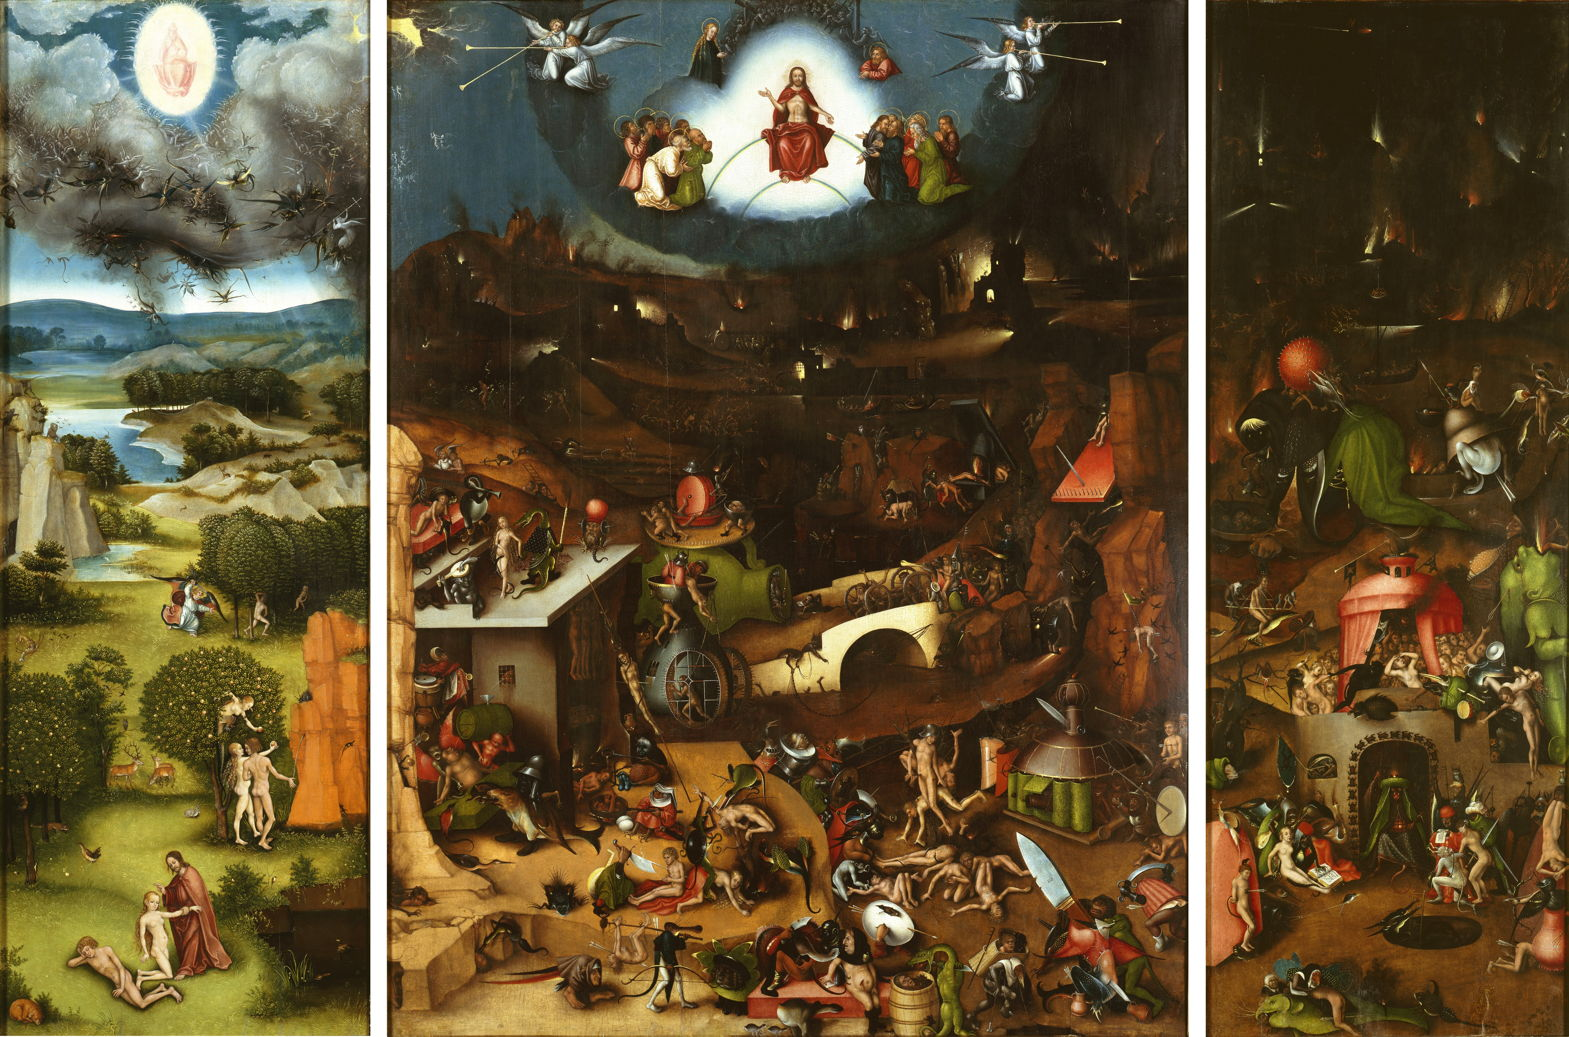 The Last Judgement, School of Lucas Cranach 1519